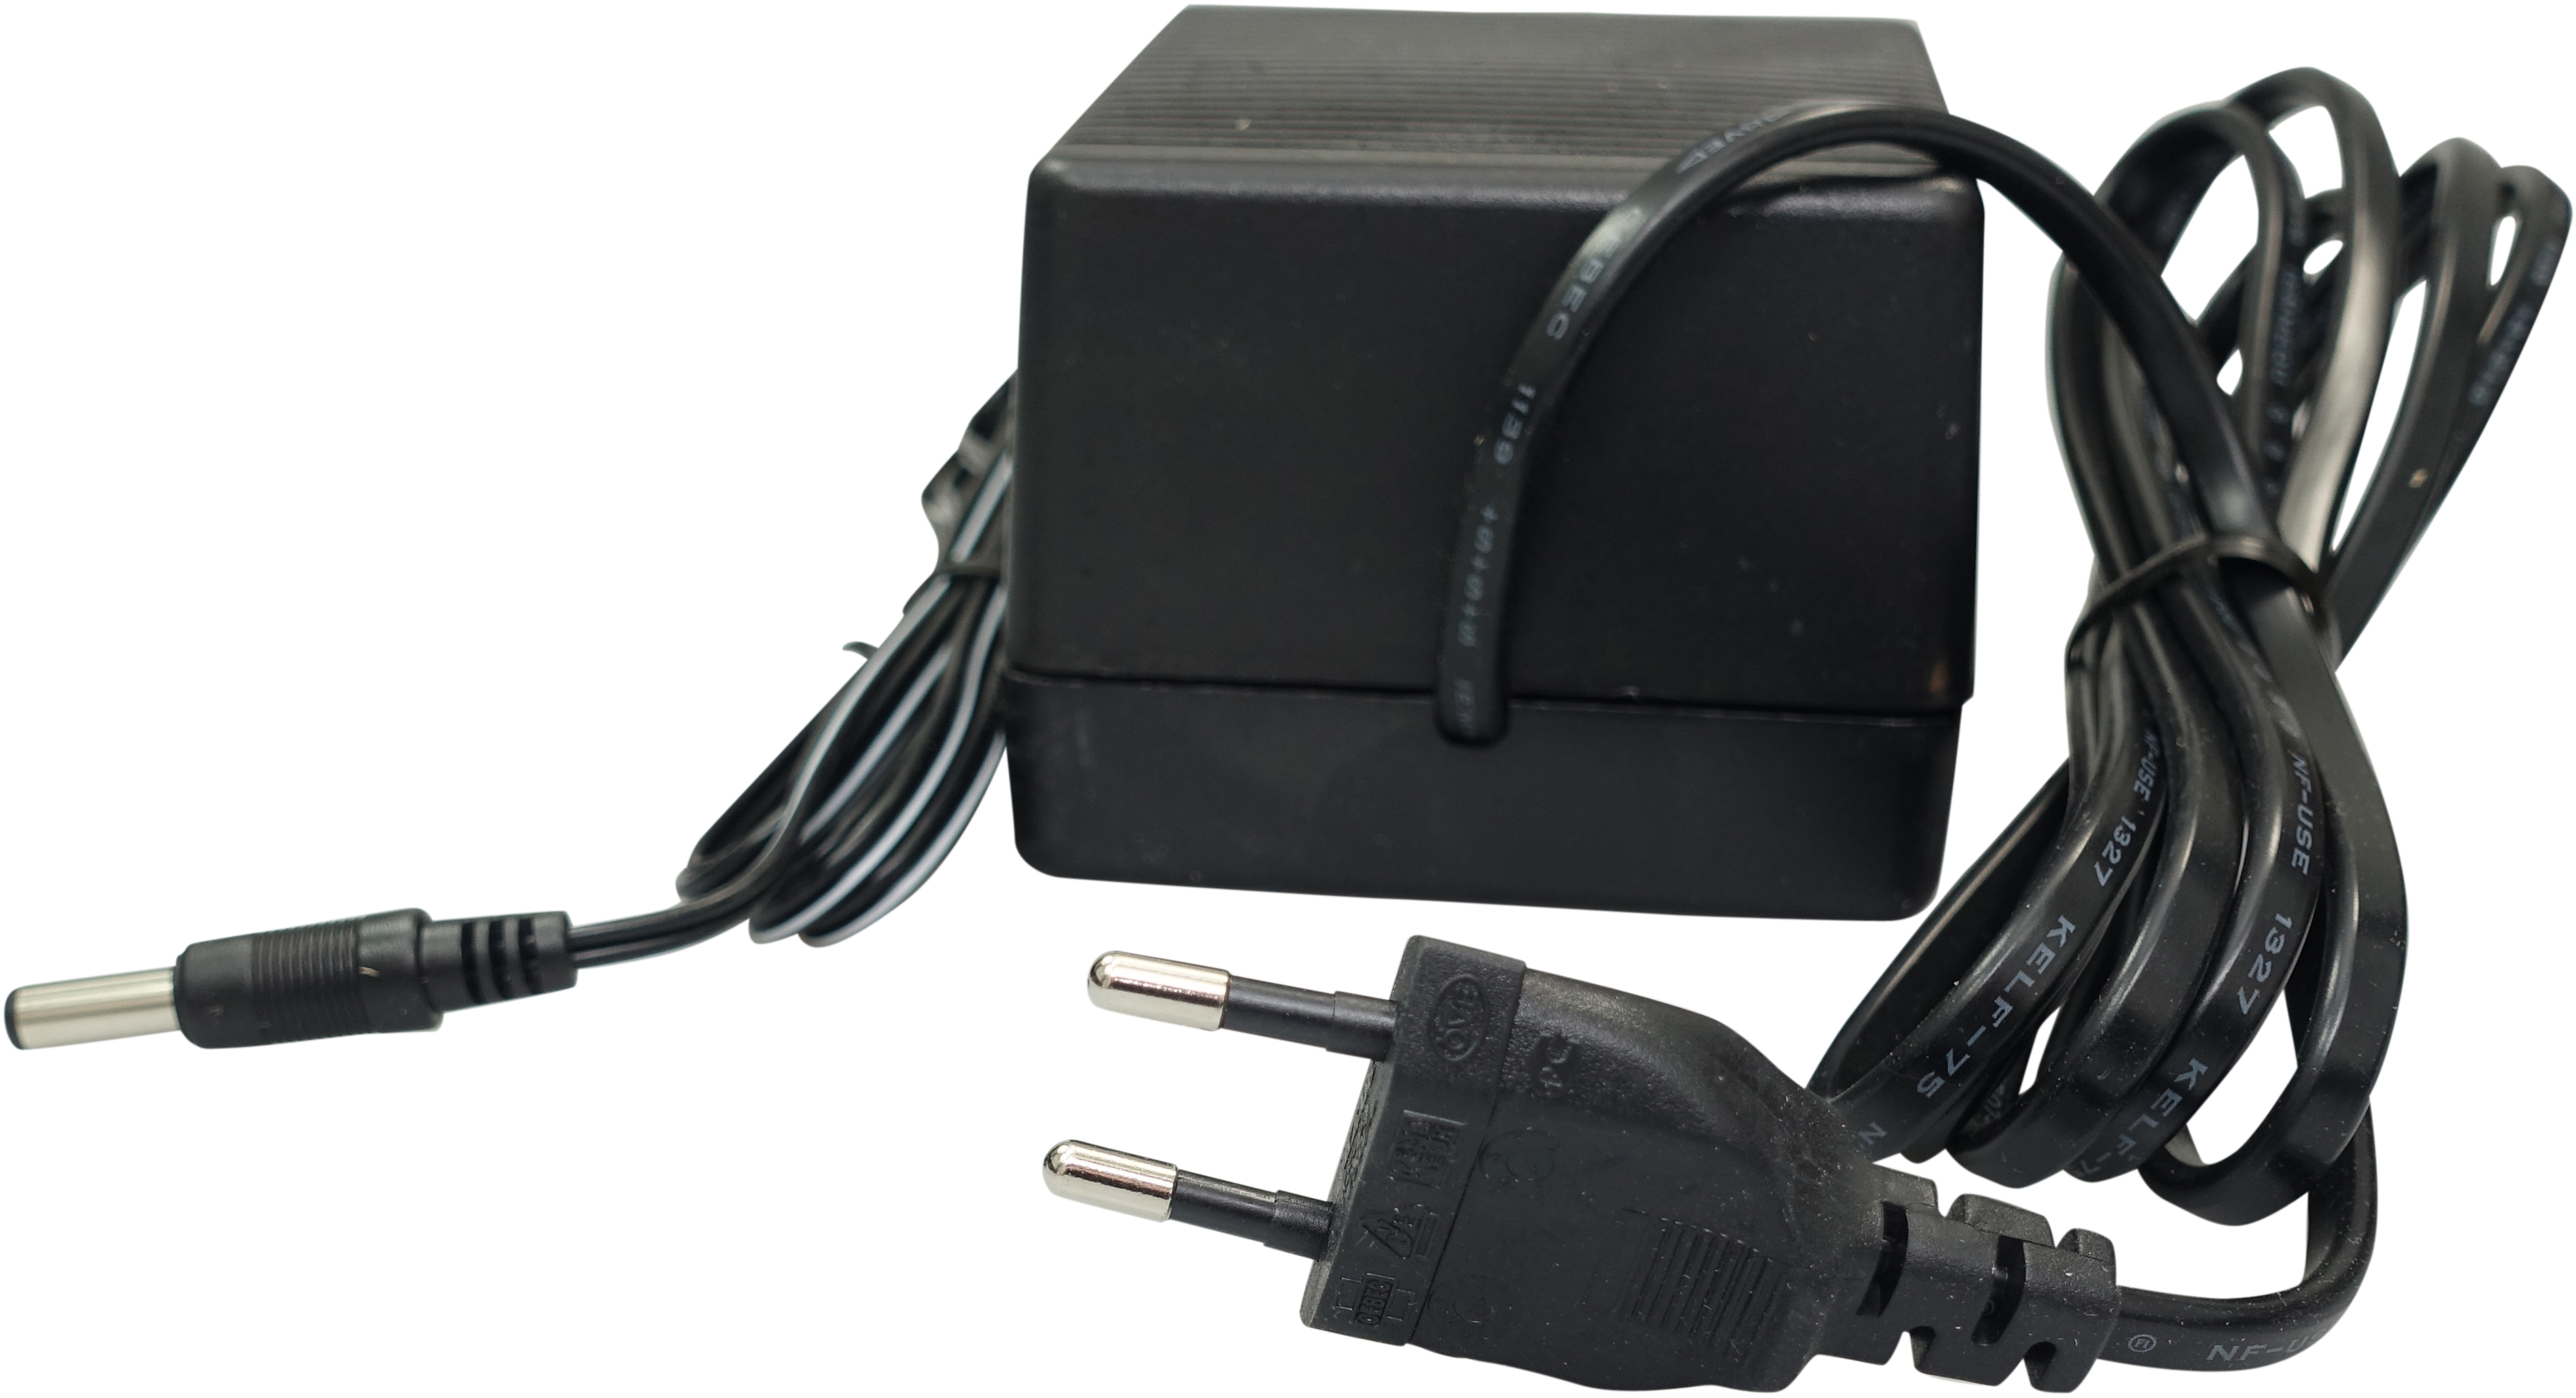 Bespeco PS45 AC/DC Adapter